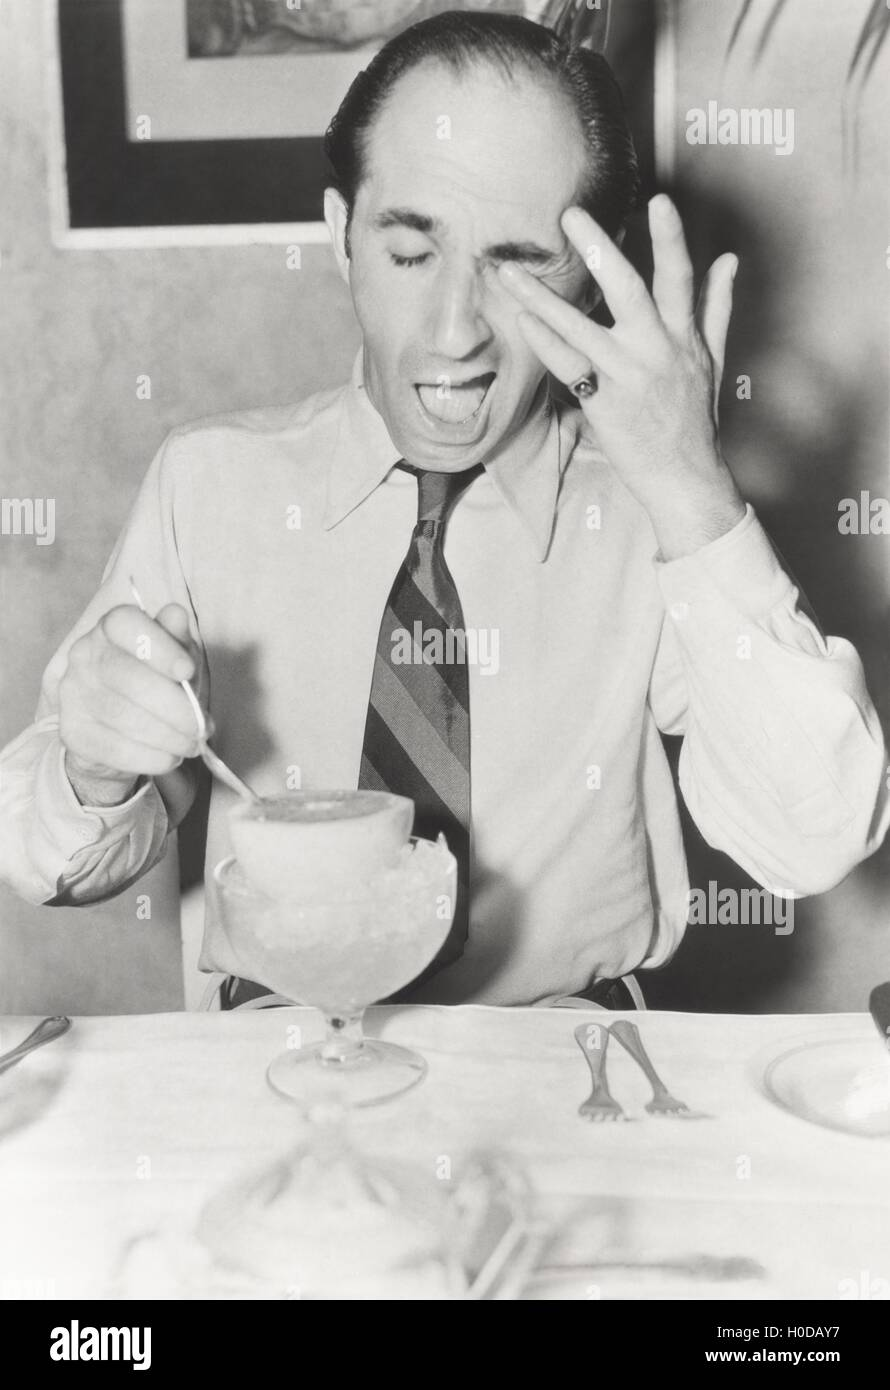 Man squirted by grapefruit - Stock Image